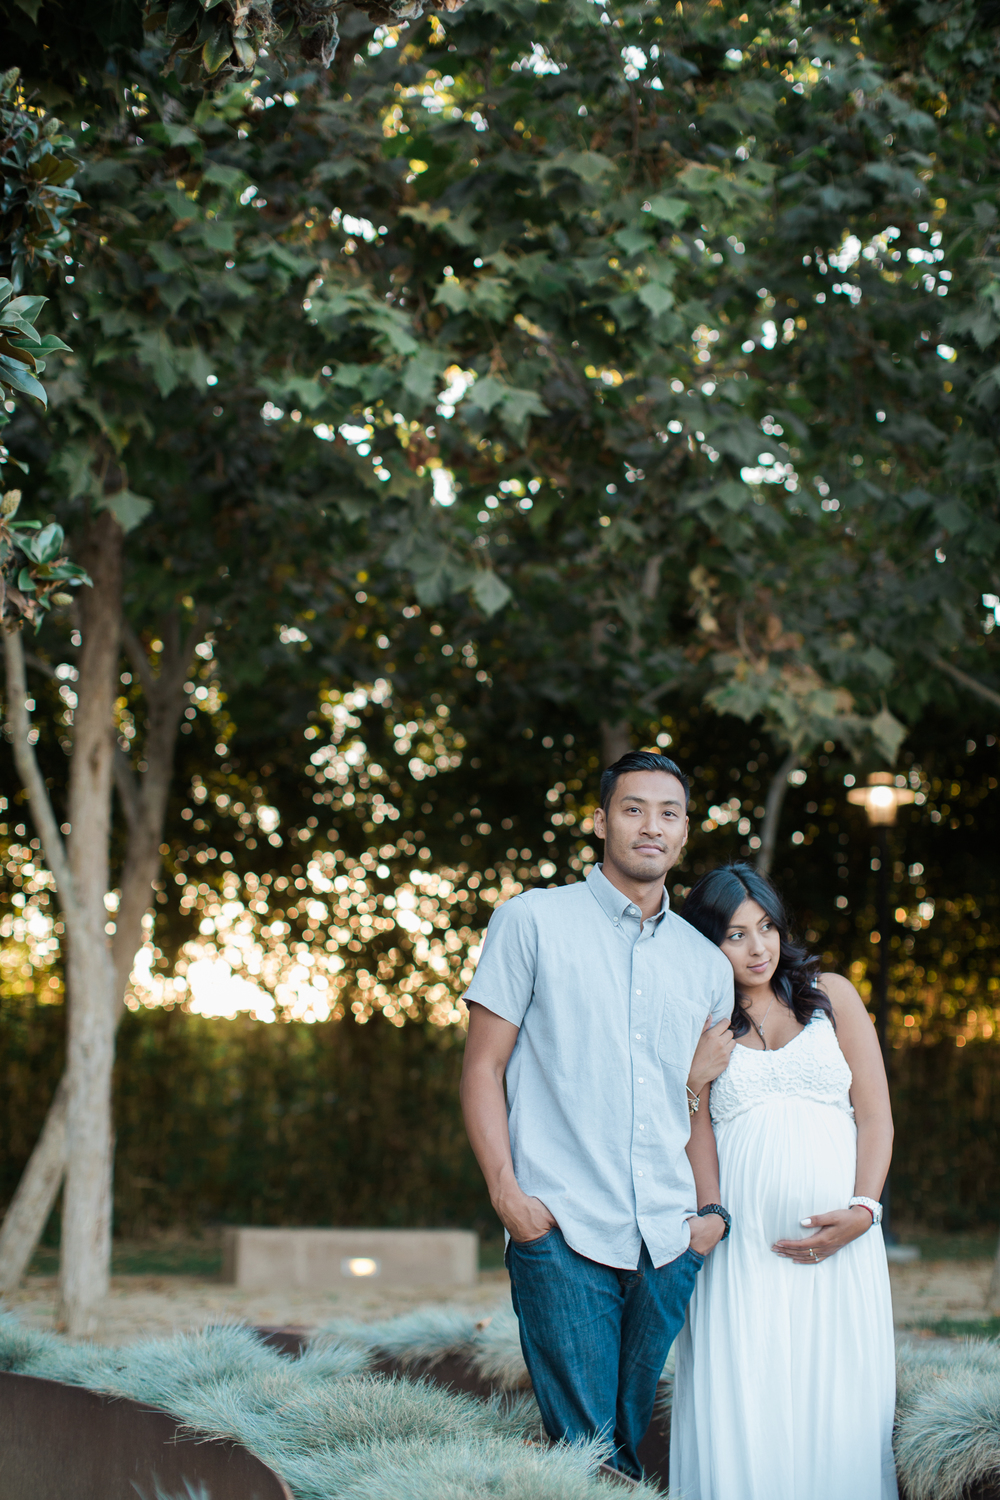 Marcella_Maternity_Cerritos_BrandonJFerlin_Photography-91.jpg